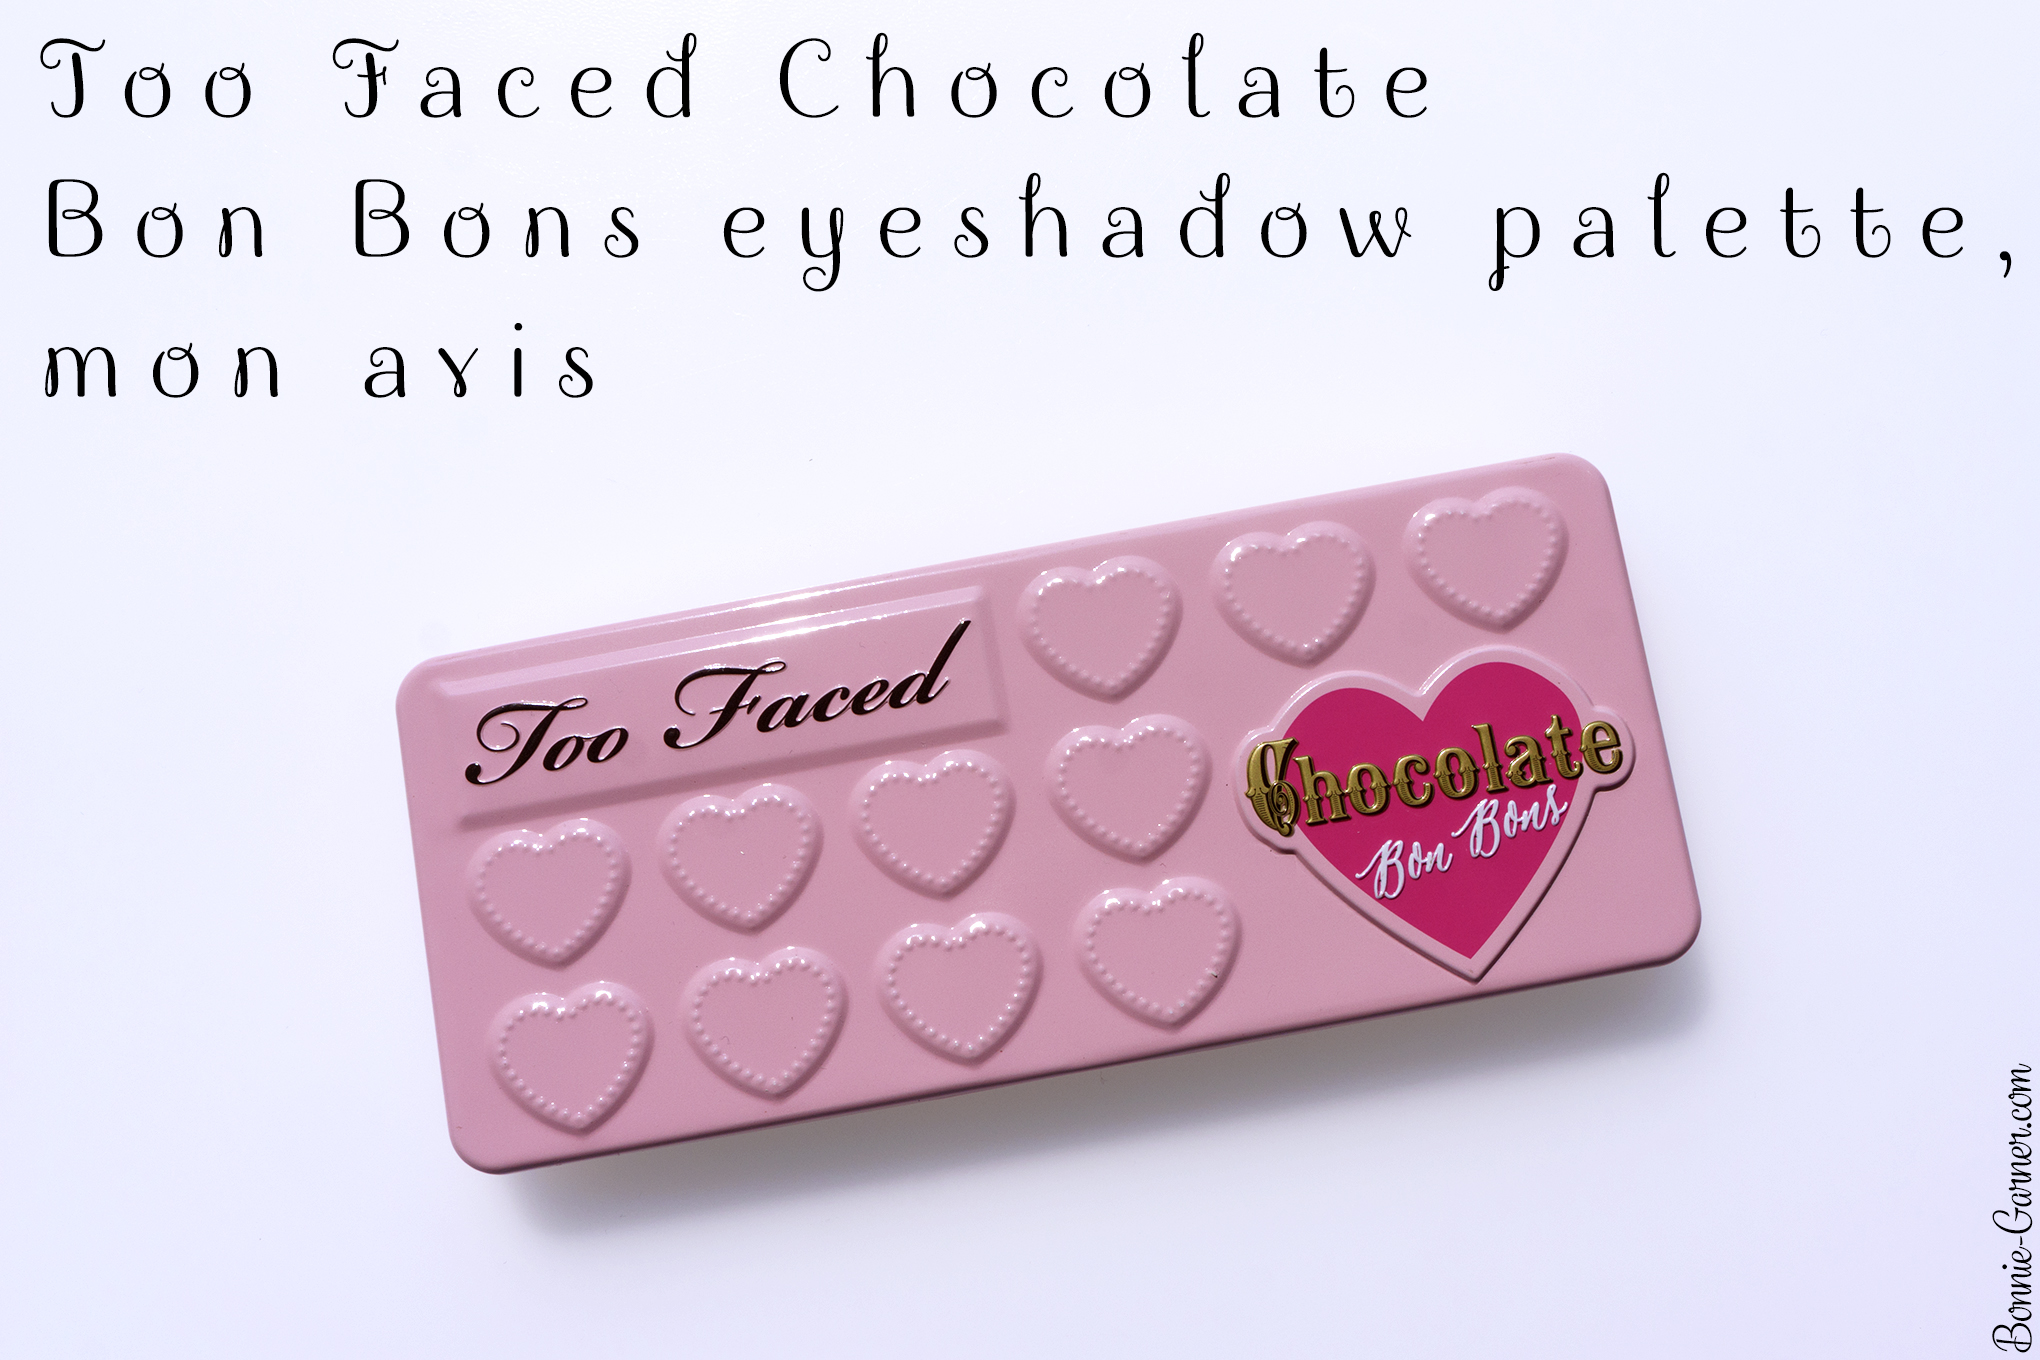 Too Faced Chocolate Bon Bons eyeshadow palette, mon avis